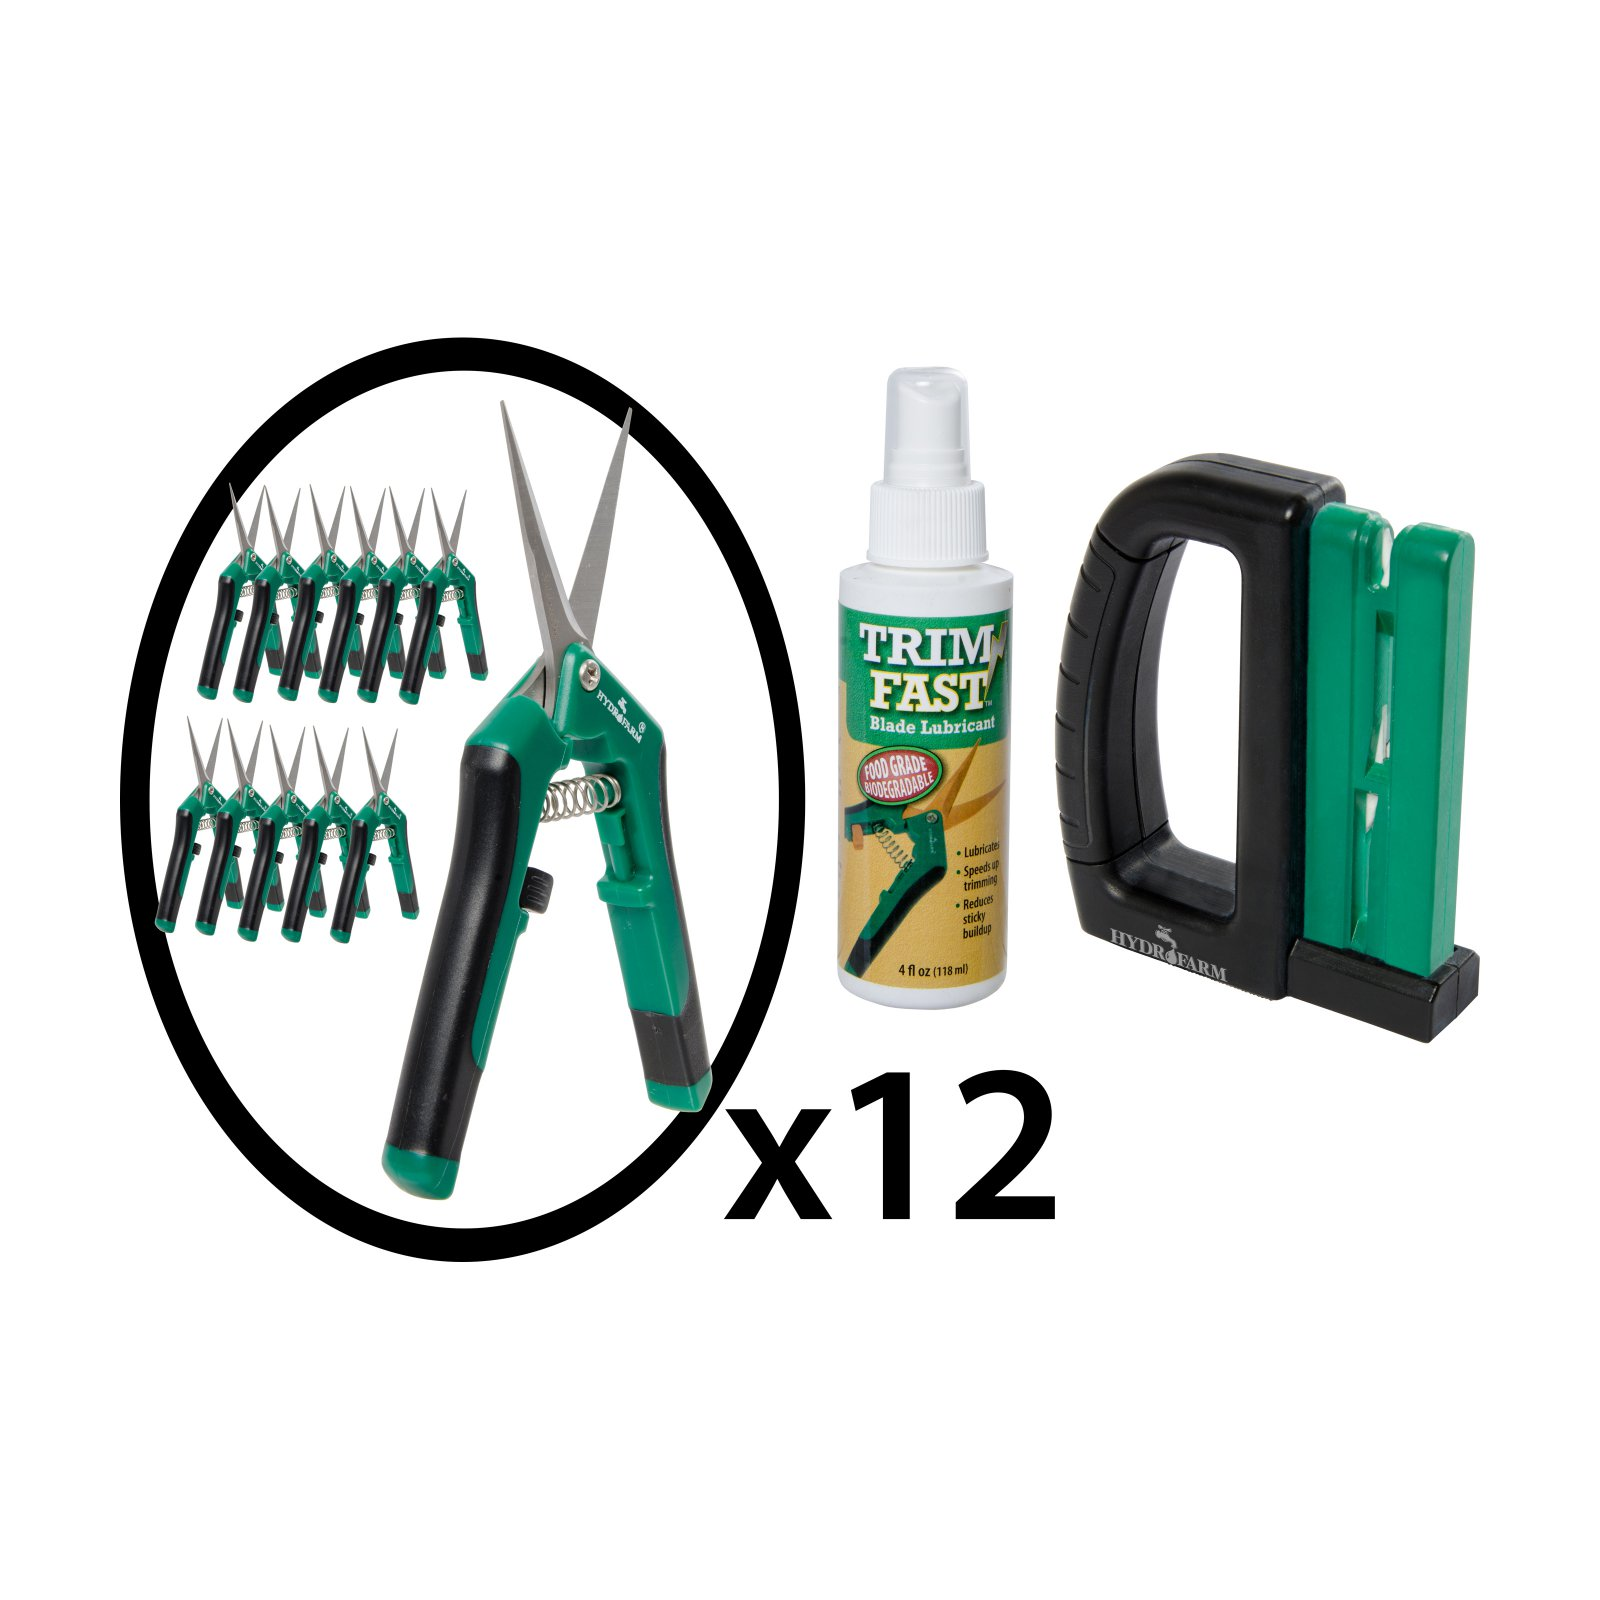 Hydrofarm Professional Trimmer Pack with 12 Curved Blade Pruners